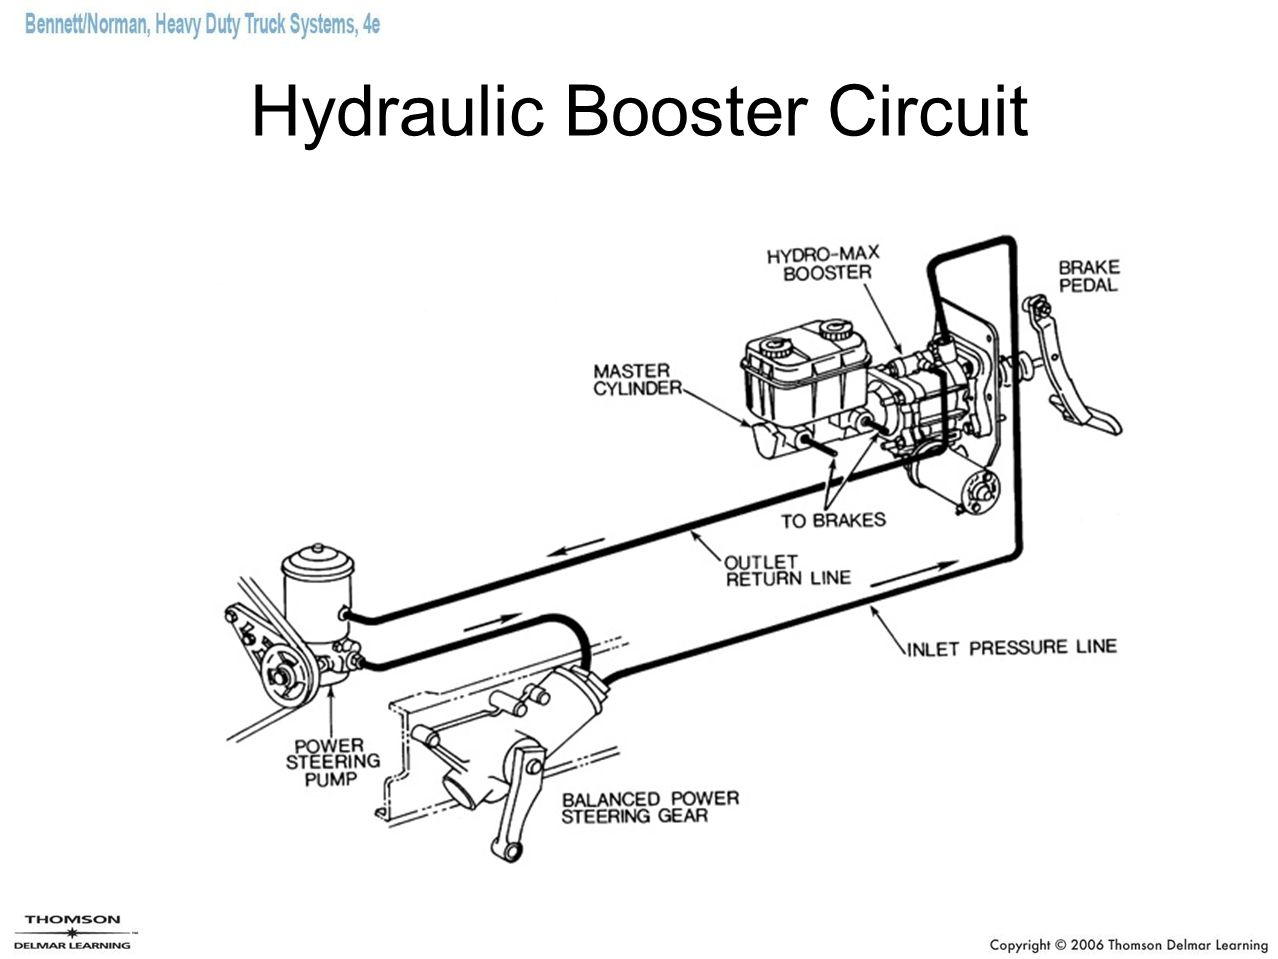 Hydraulic Booster Circuit